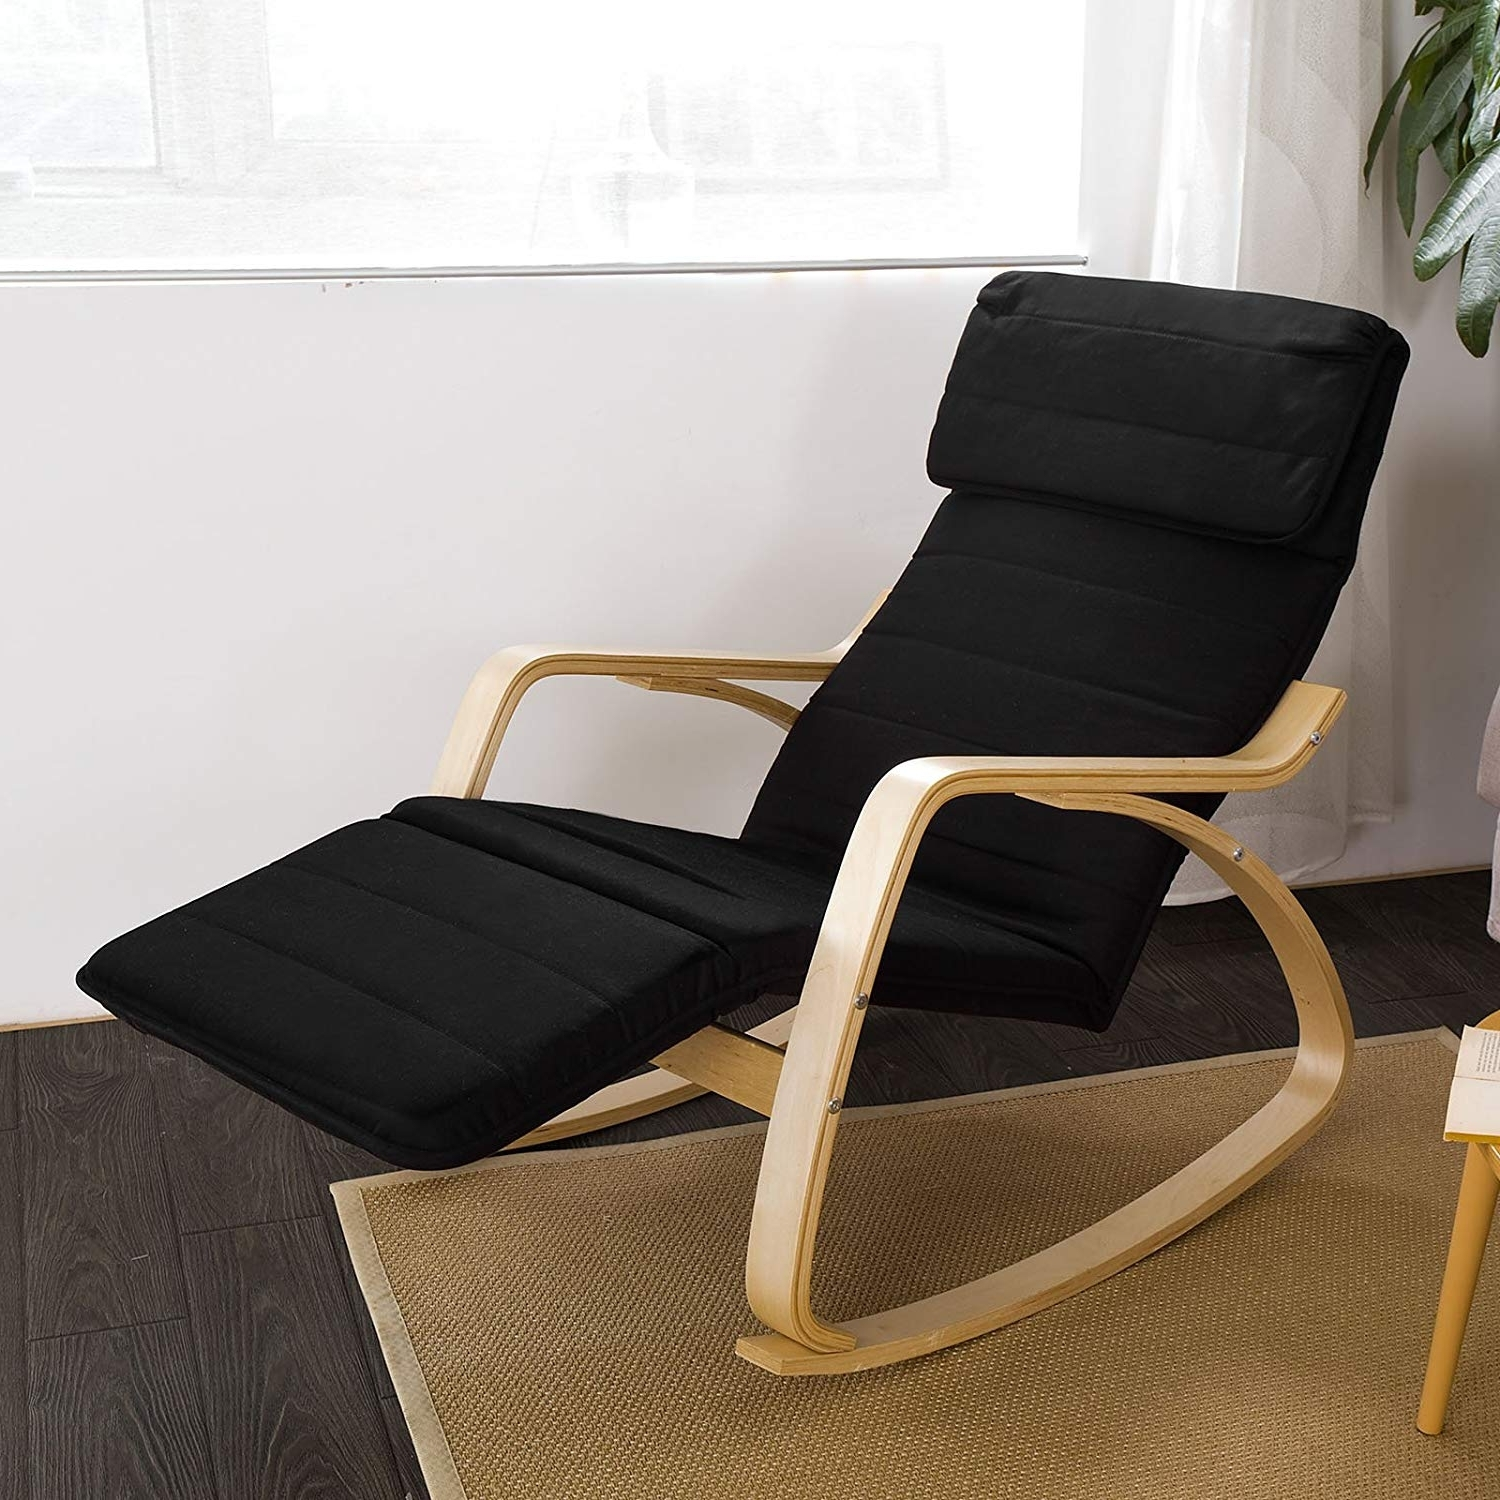 Amazon Rocking Chairs Regarding Most Current Amazon: Haotian Comfortable Relax Rocking Chair With Foot Rest (View 4 of 15)